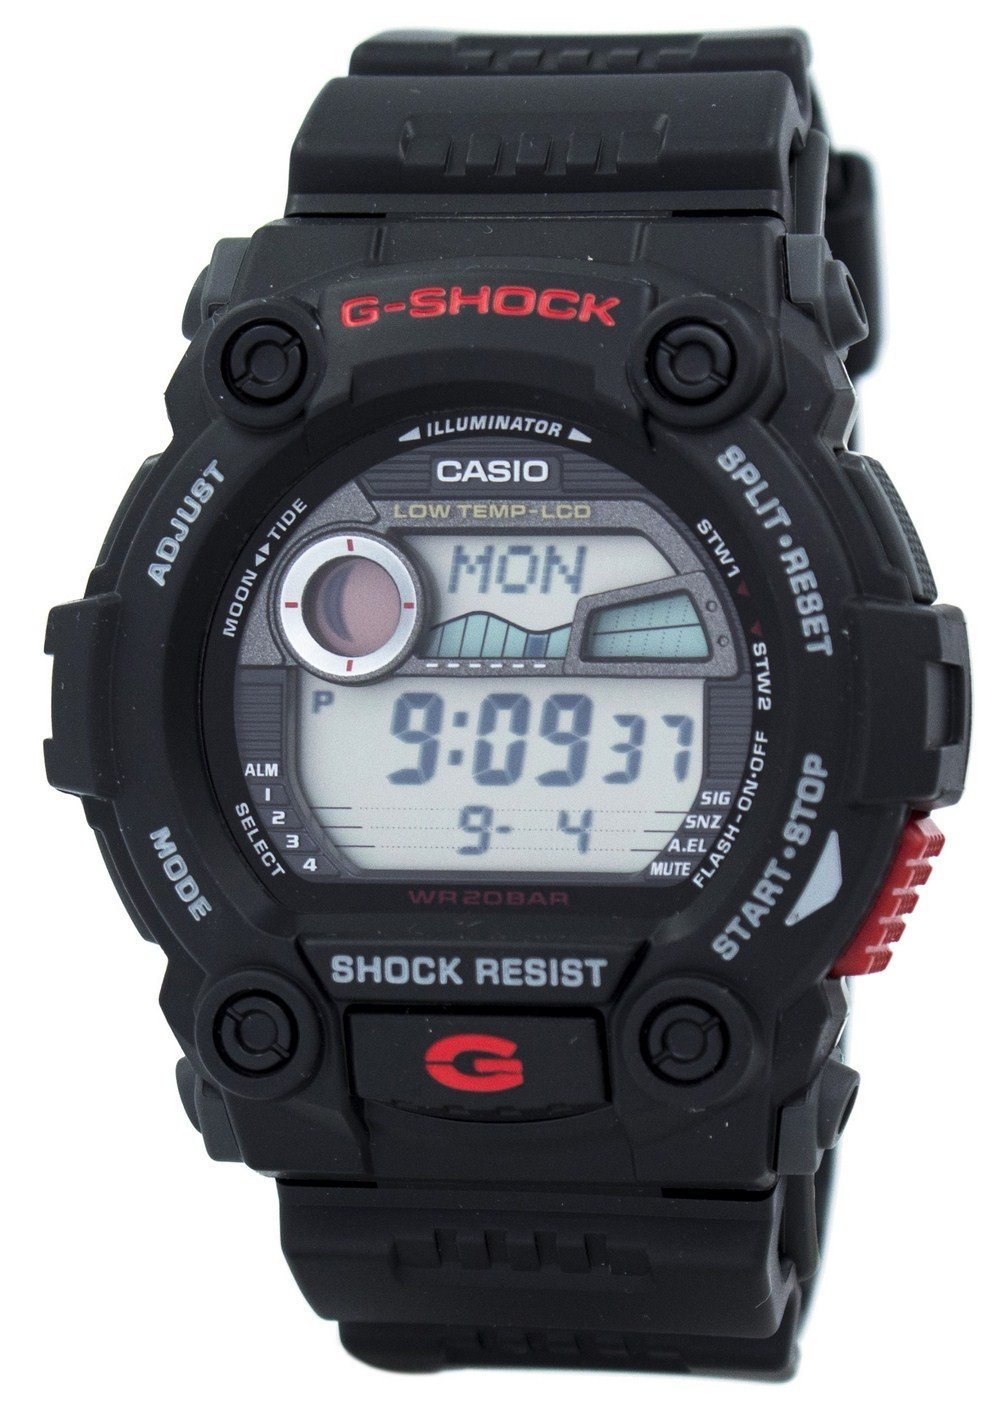 Casio G-Shock G-7900-1D G7900-1D Digital Sports Men's Watch